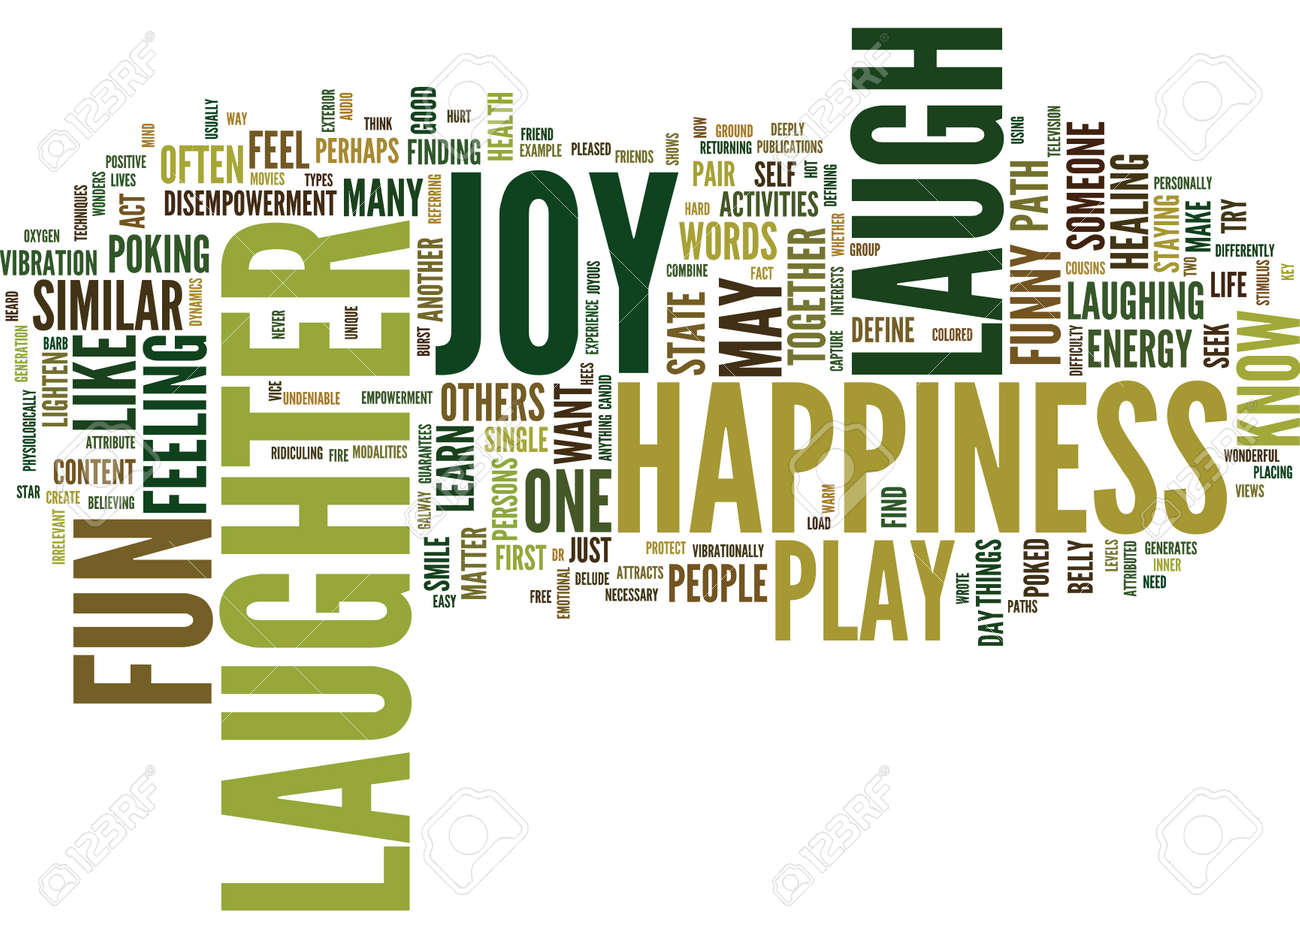 LAUGHTER PLAY FUN JOY HAPPINESS Text Background Word Cloud Concept - 82592529